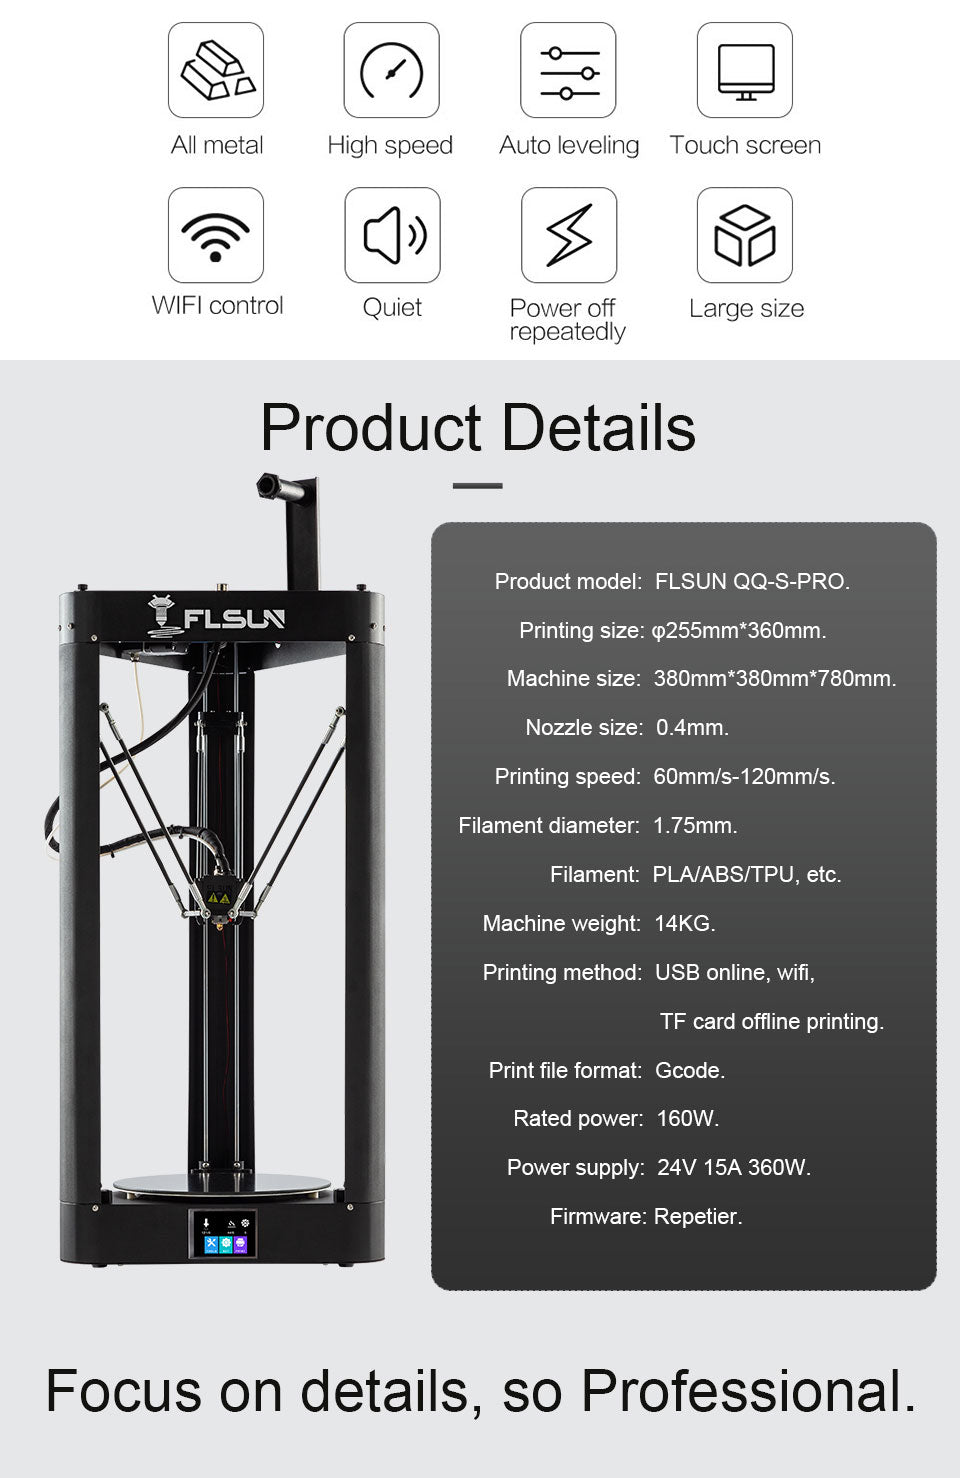 Flsun's 3D printer is the top-selling in the country because it is the best in the 3D printing space.